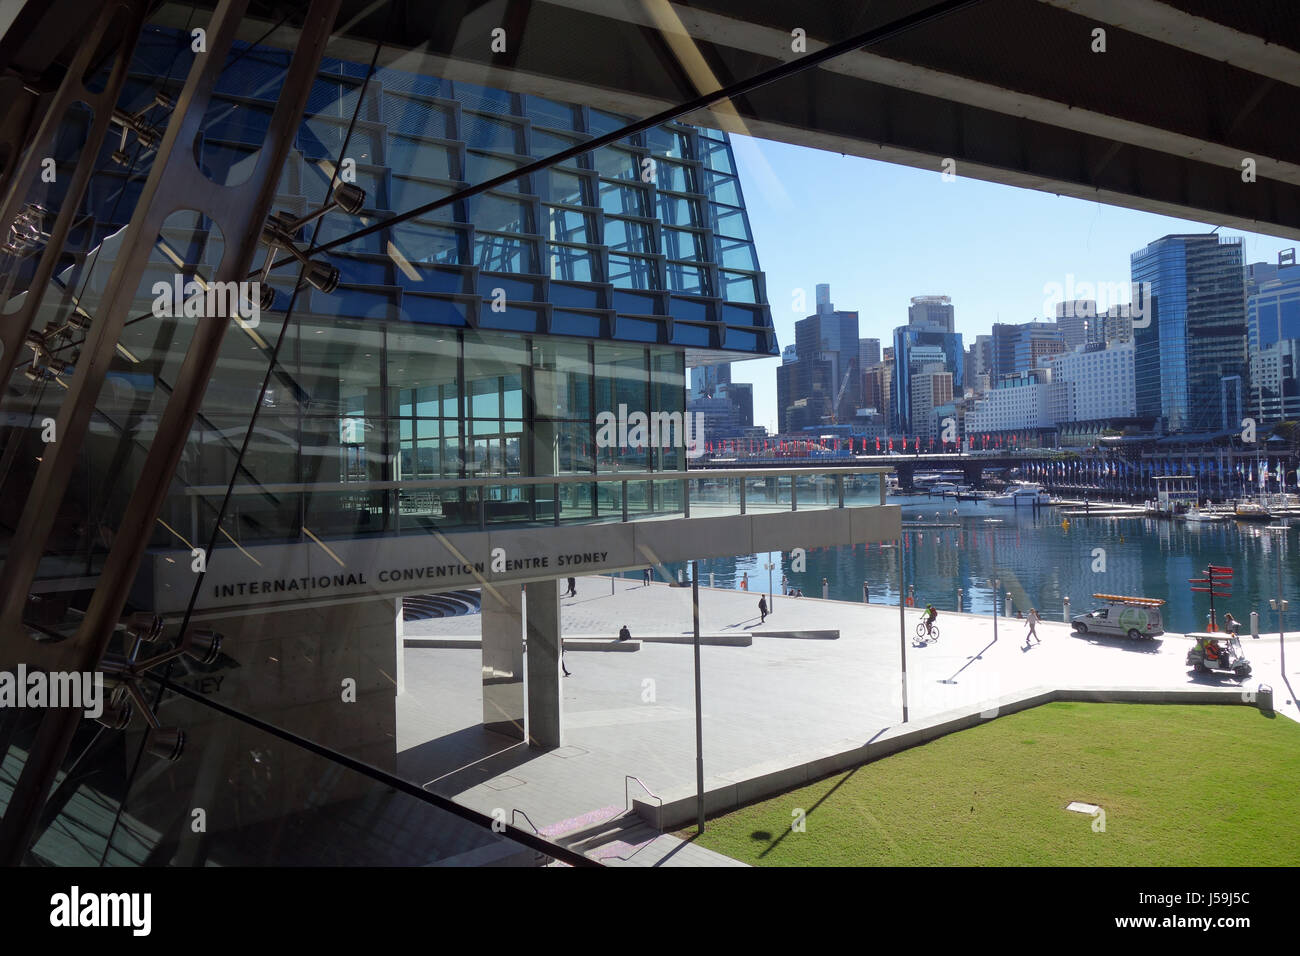 View across Darling Harbour from International Convention Centre, Sydney, NSW, Australia. No MR or PR - Stock Image